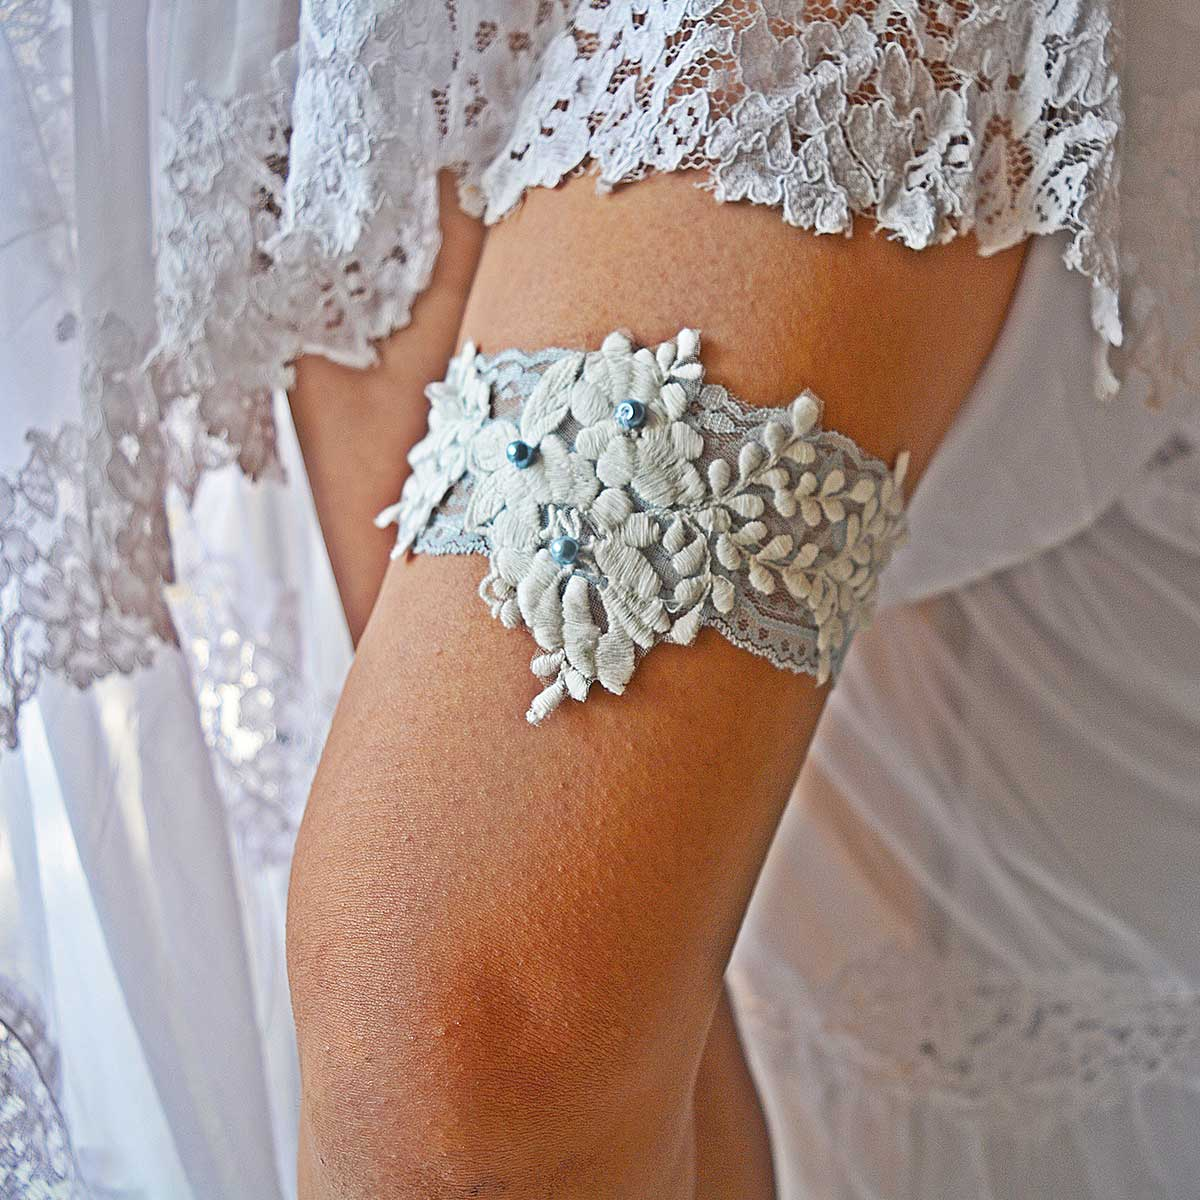 Bridal Garter With White Elastic And Pale Blue Applique Lace